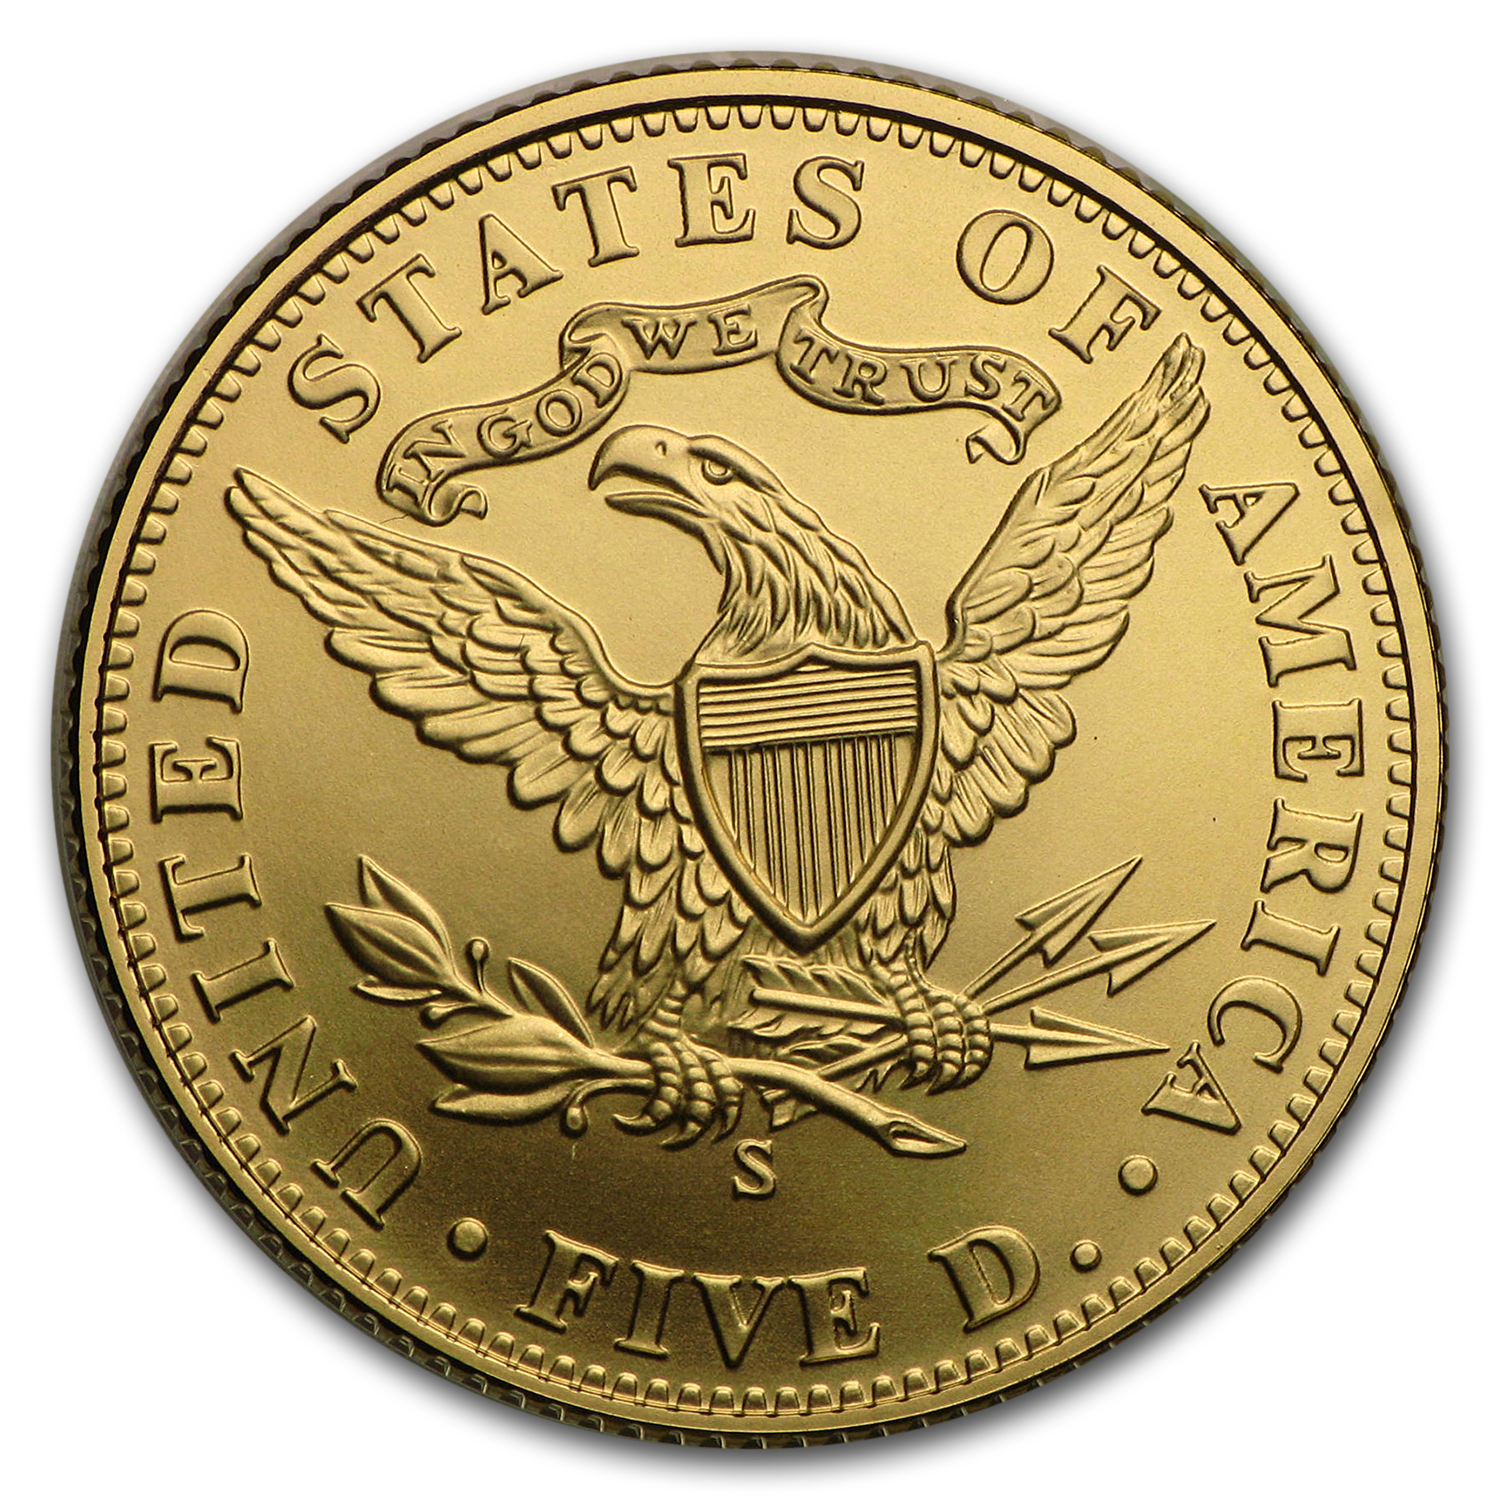 2006-S Gold $5 Commem San Francisco Old Mint BU (w/Box & COA)